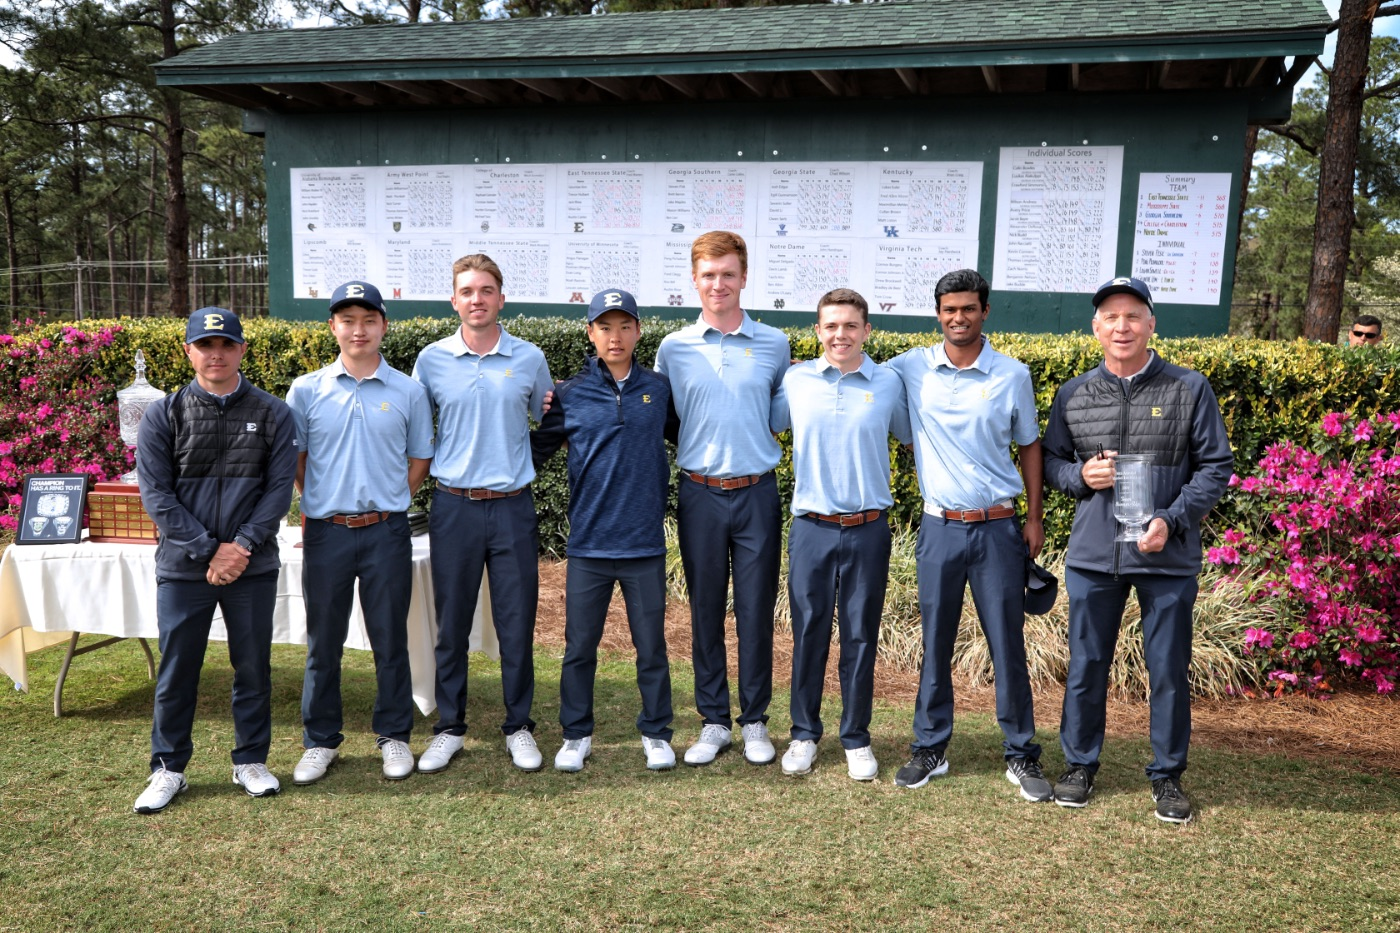 ETSU earns runner-up honor at Schenkel Invitational; Four Bucs finish in top-10